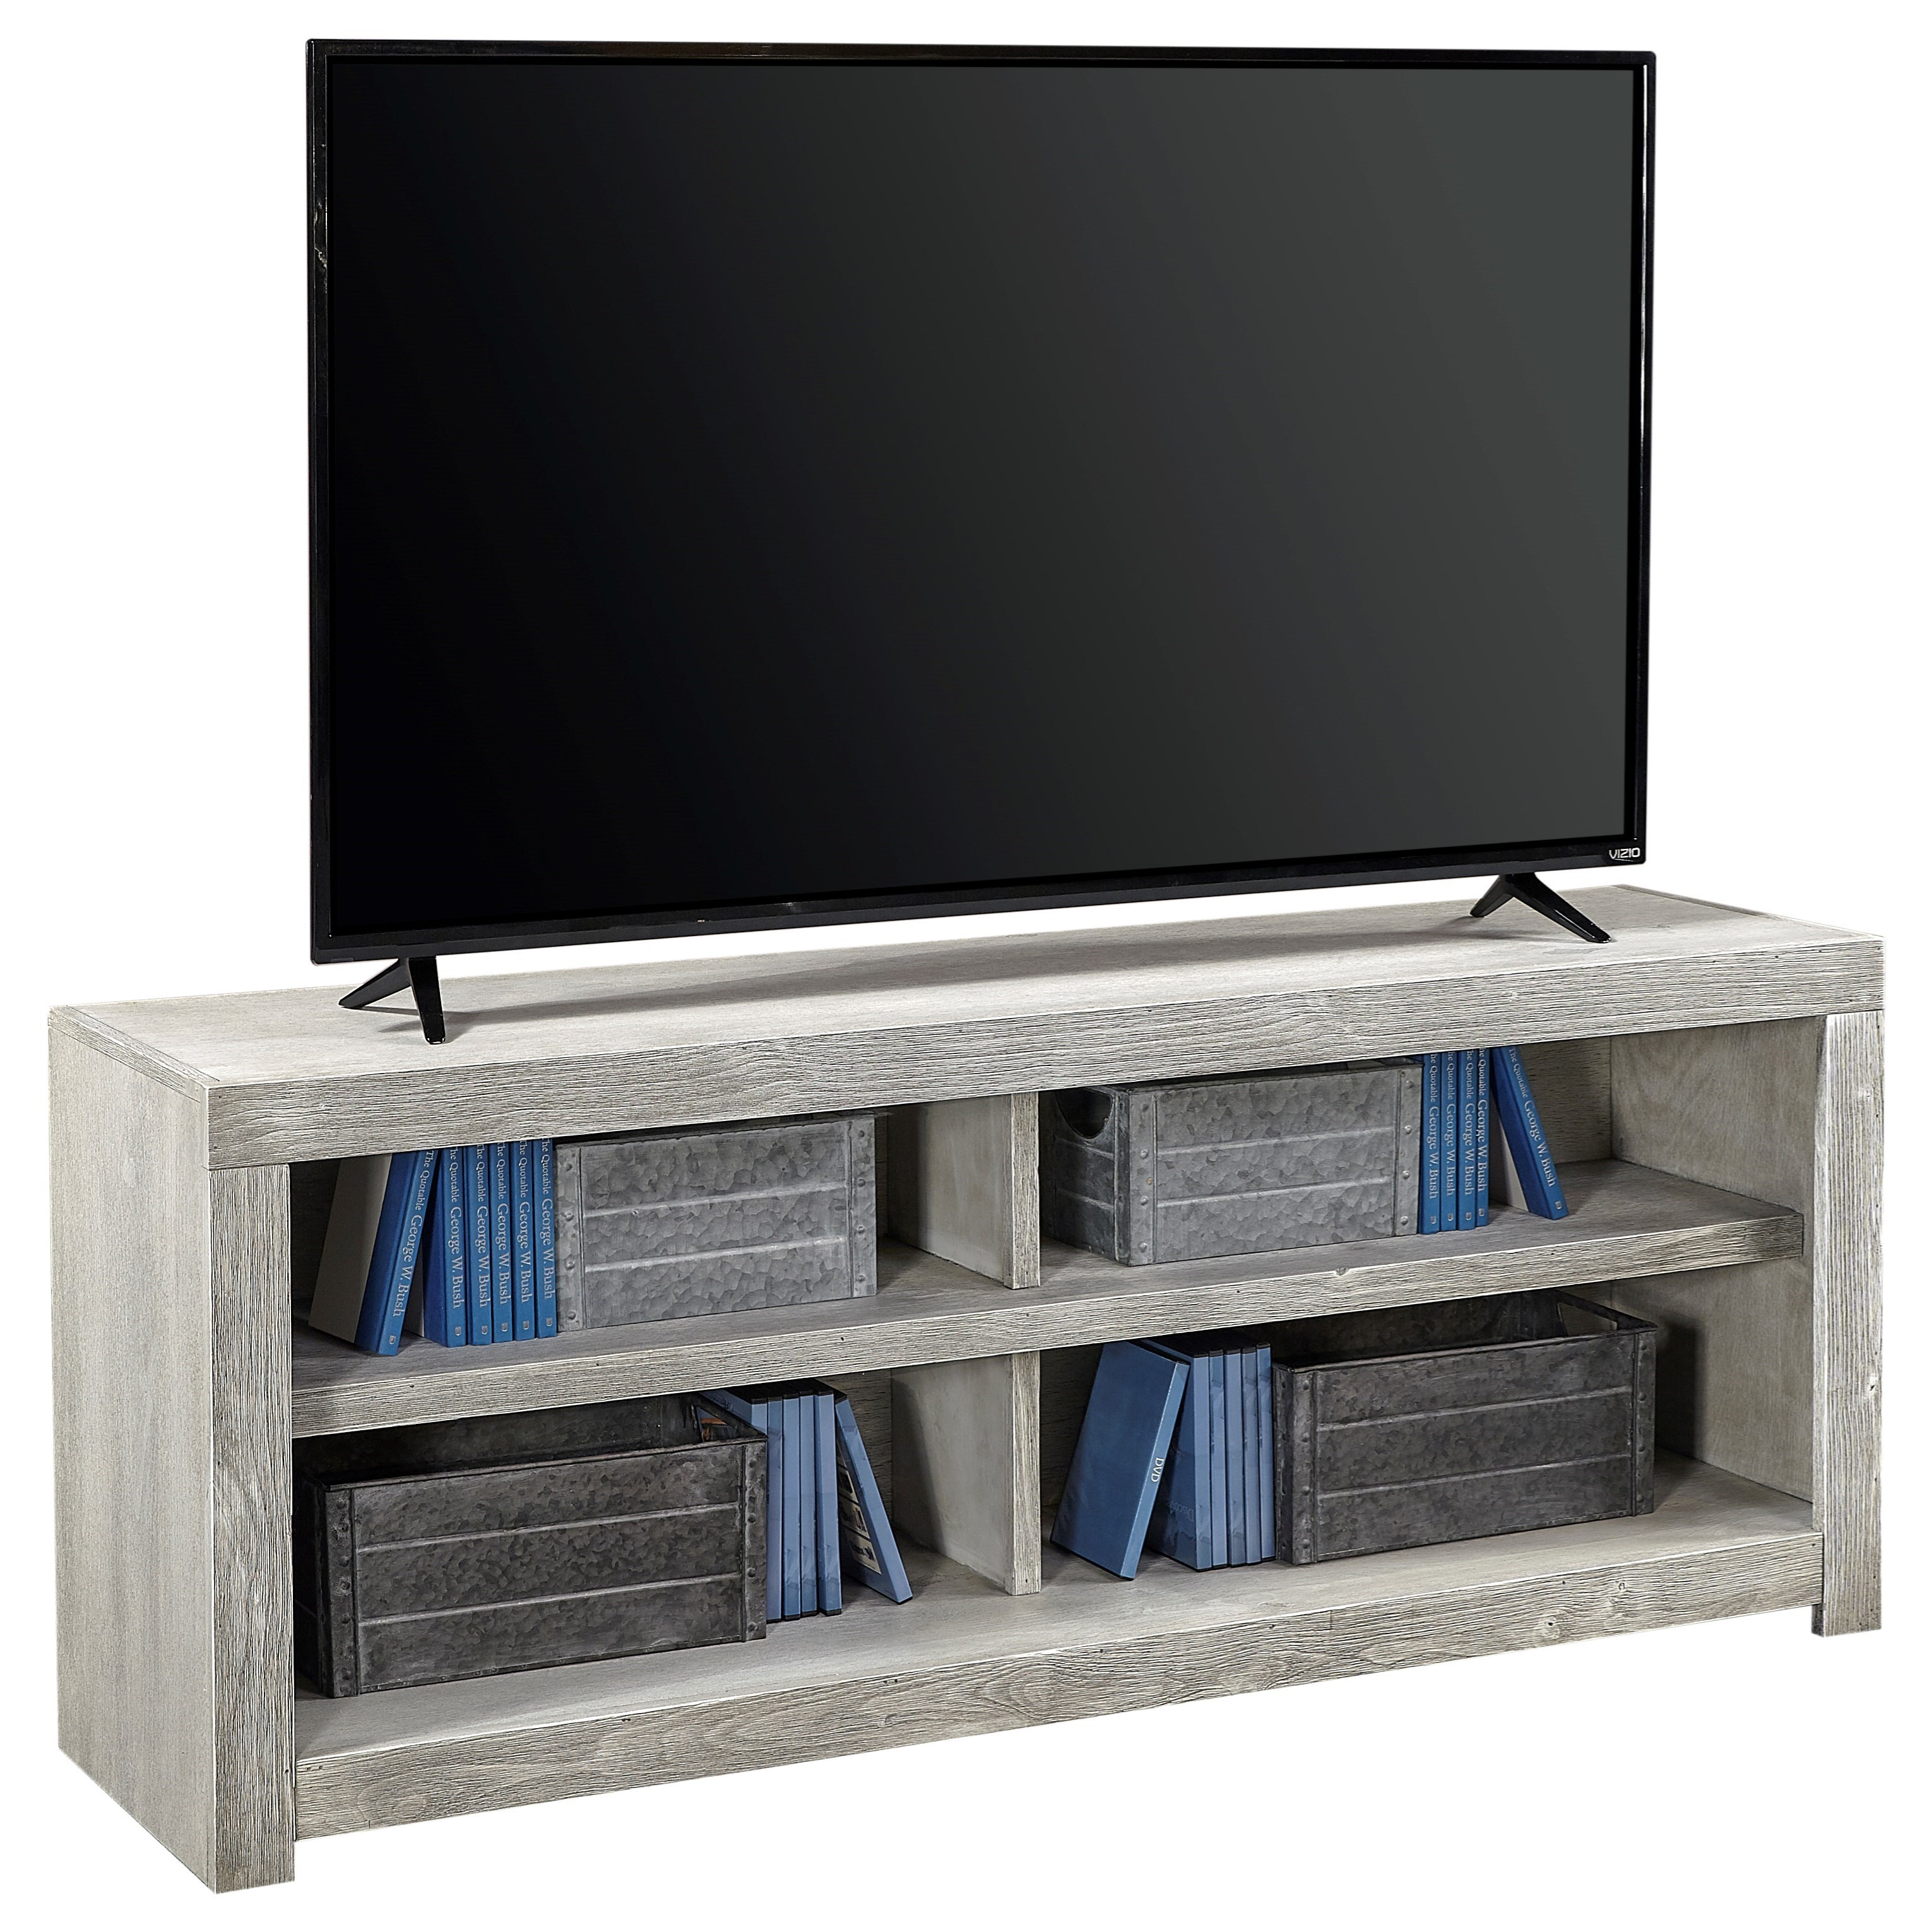 "Avery Loft 60"" Open Console by Aspenhome at Stoney Creek Furniture"